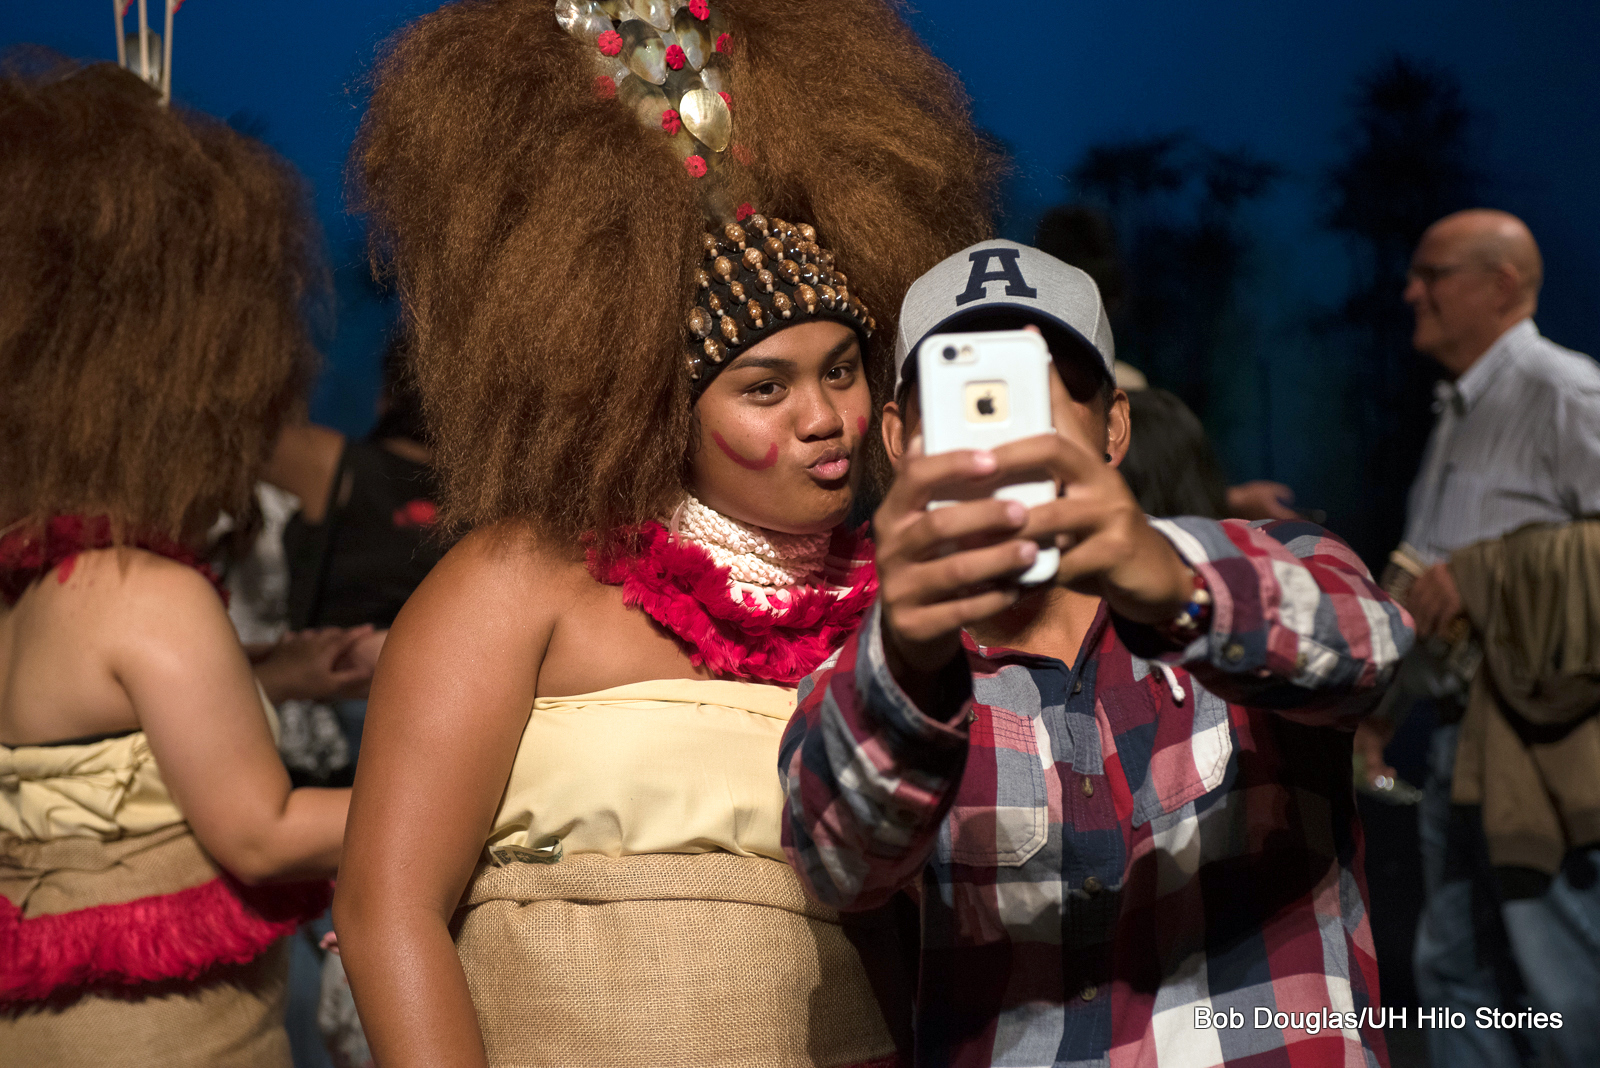 Woman from the Samoan dance group, large headdress, poses for selfie with member of the audience. She's sending a kiss to the cell camera.